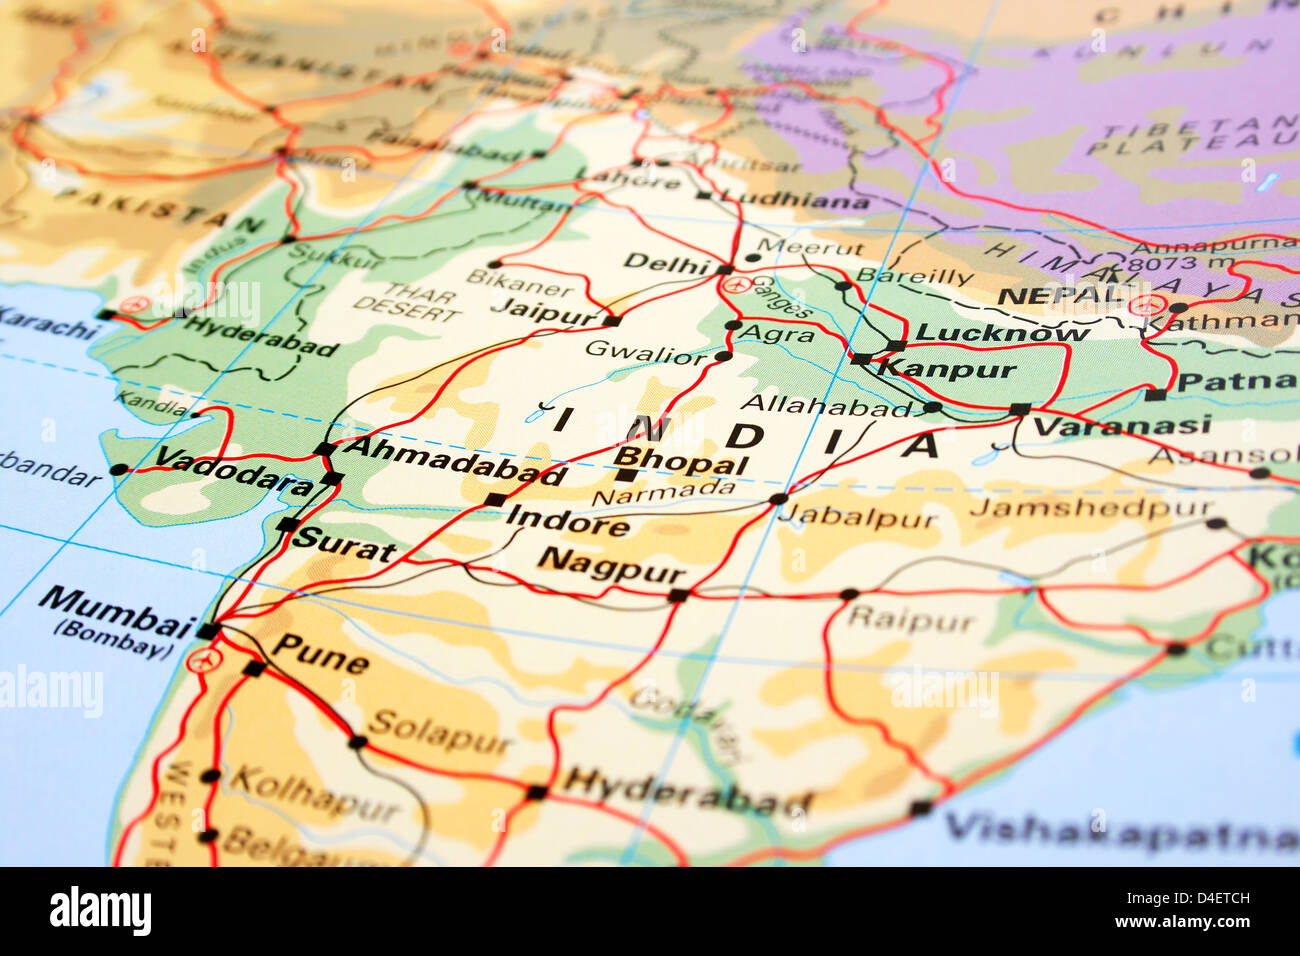 India Map Stock Photos & India Map Stock Images - Alamy on printable map of india, globe with india, map south africa, map the us, map south korea, map saudi arabia, business with india, map spain, map russia, map sri lanka, map japan, map southeast asia, game with india, map nigeria, map of india map, map of india landforms, map east africa, map singapore, map west asia, plain map of india,